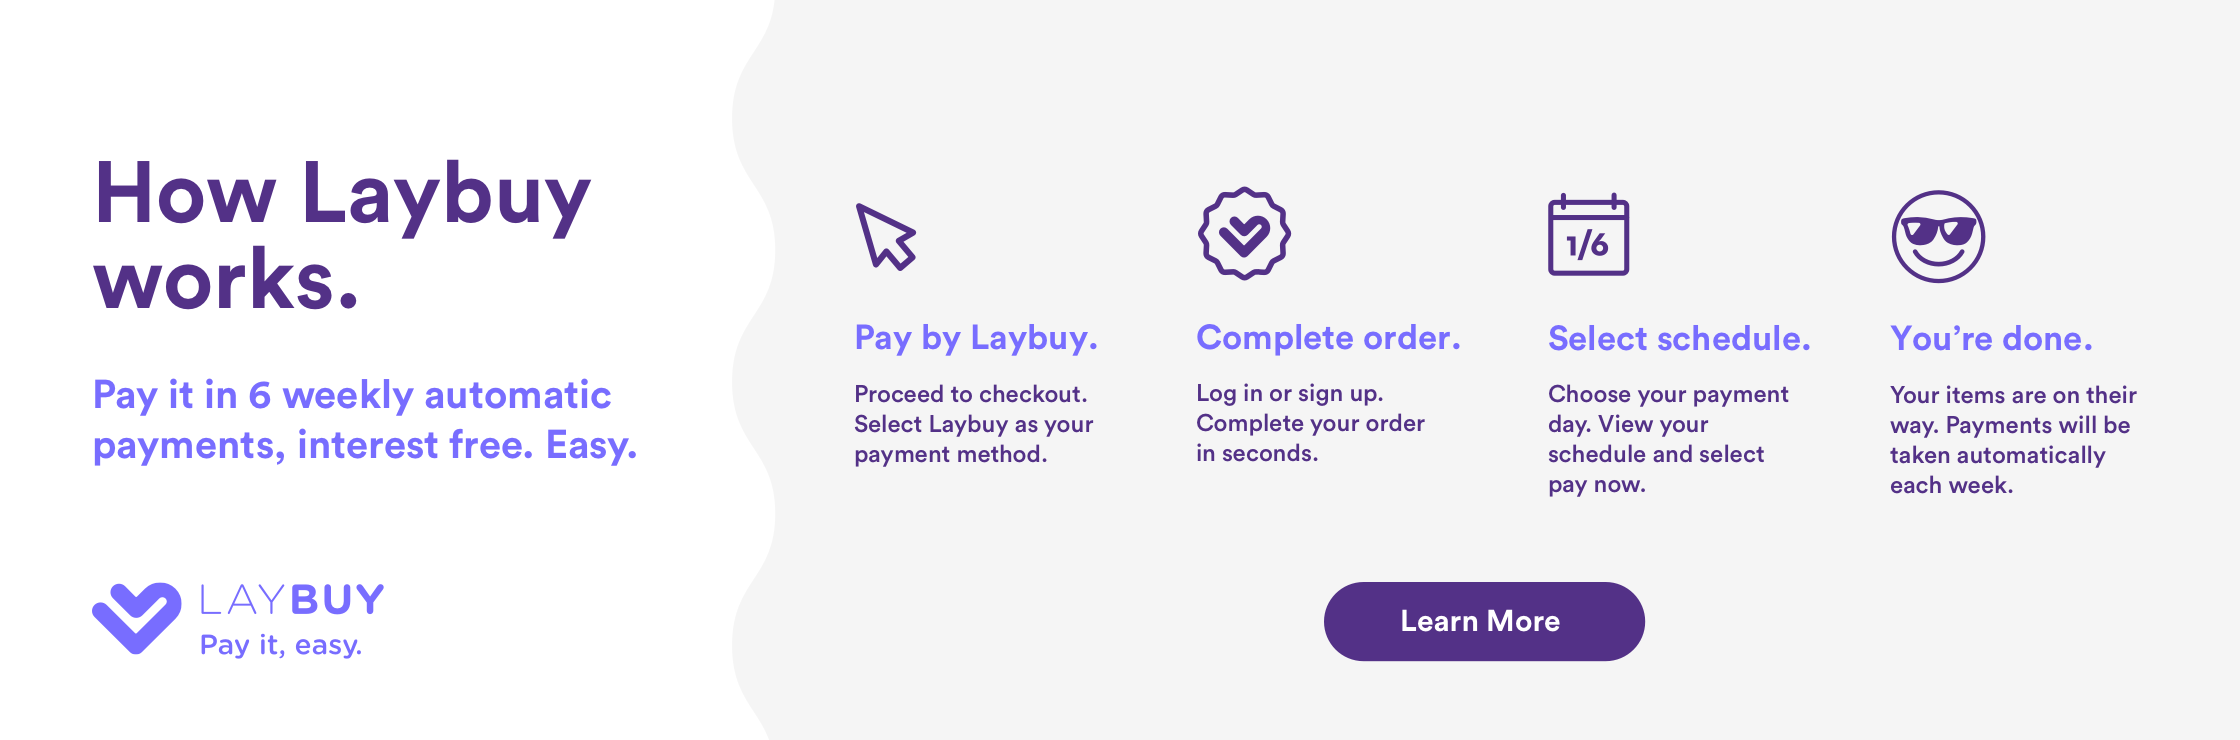 Pay It Later with Afterpay, LayBuy & AfterPay